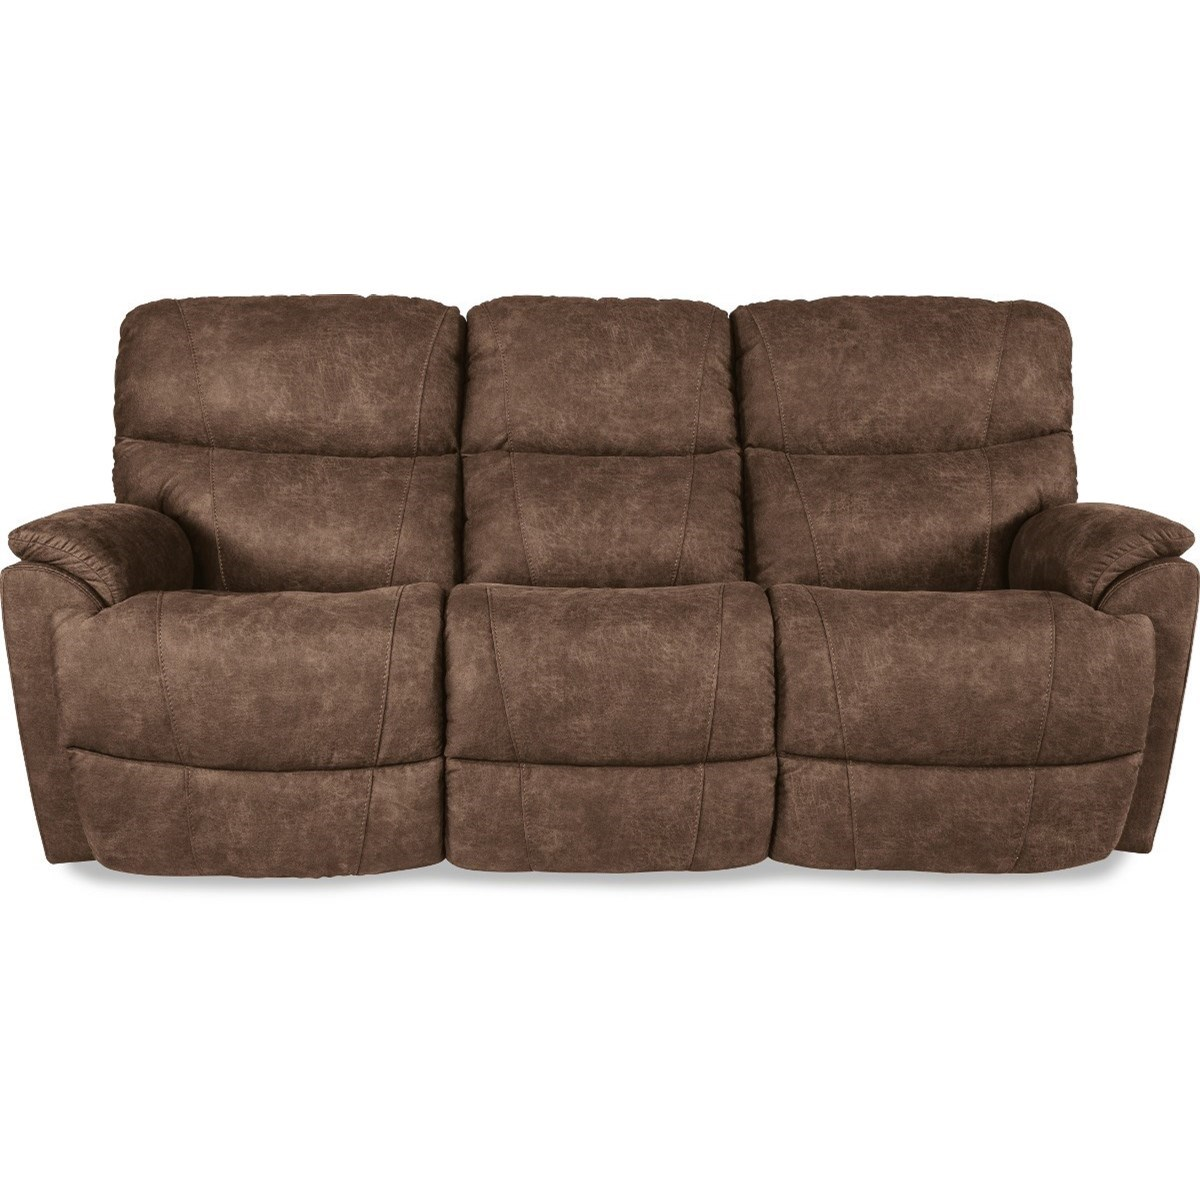 Trouper Reclining Sofa by La-Z-Boy at Miller Waldrop Furniture and Decor